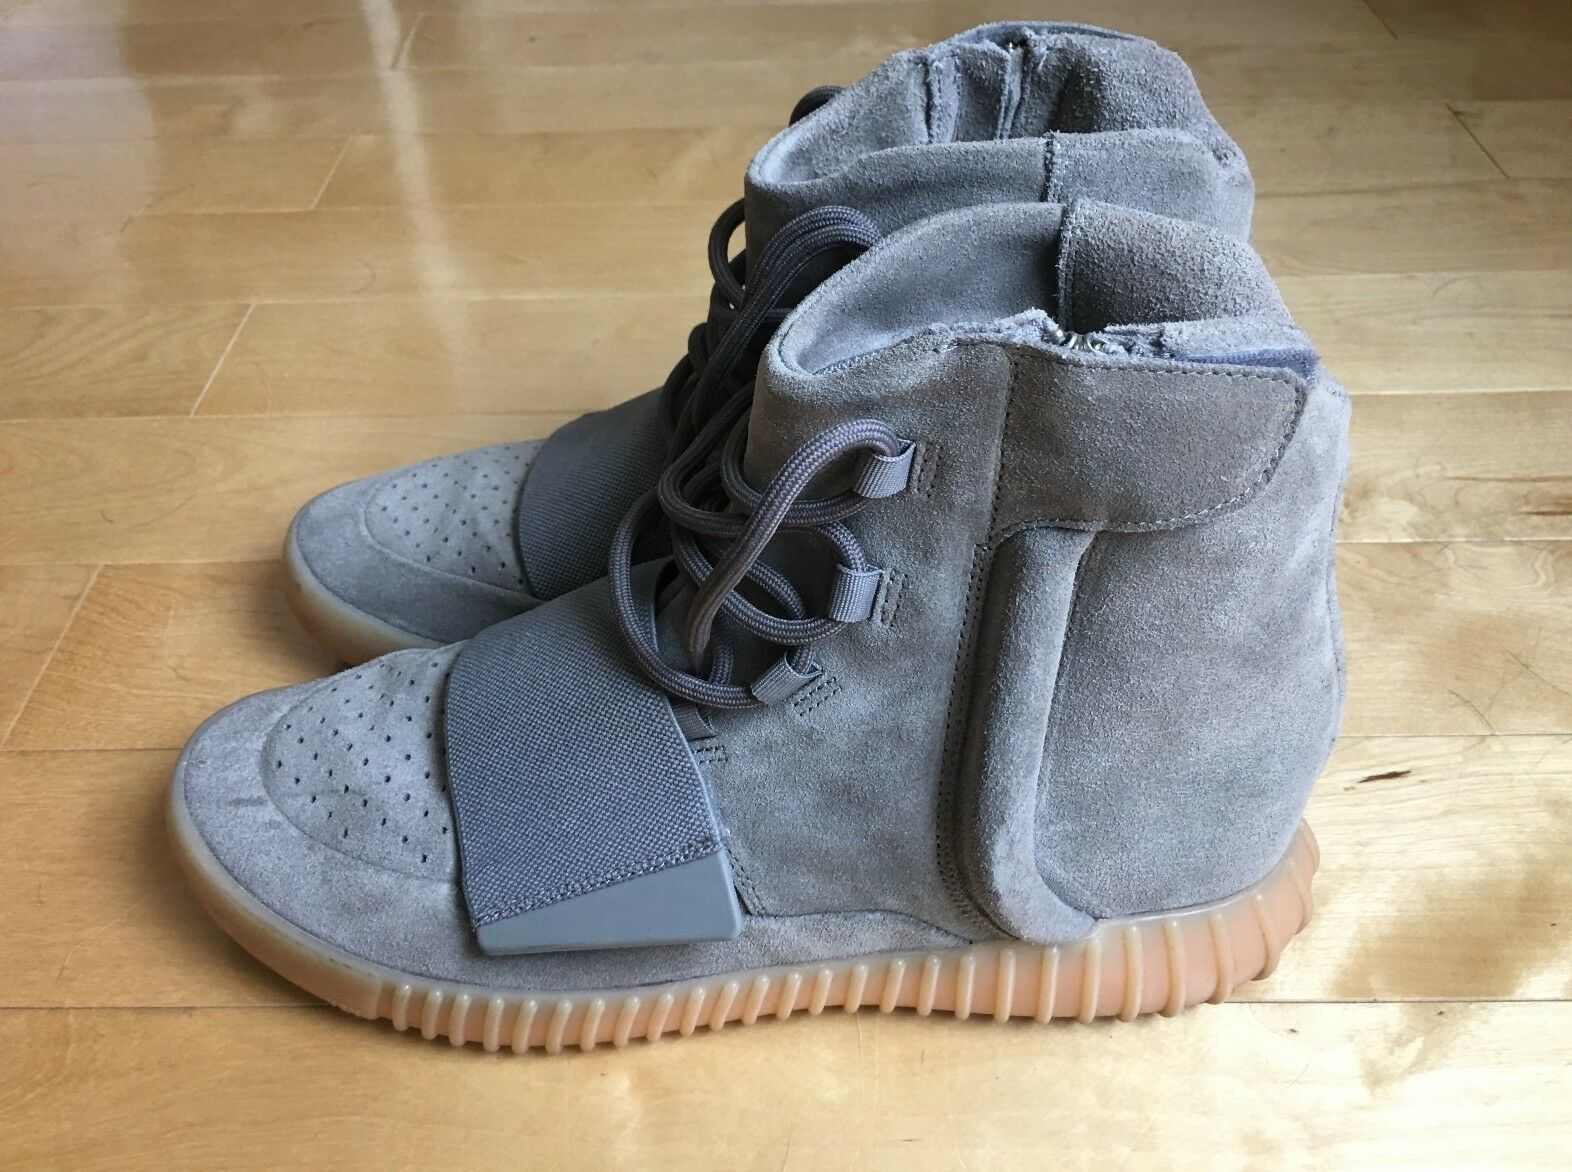 Adidas Adidas Adidas YEEZY Boost 750 Light Grey Gum Size US10.5 (no original box) d6f529